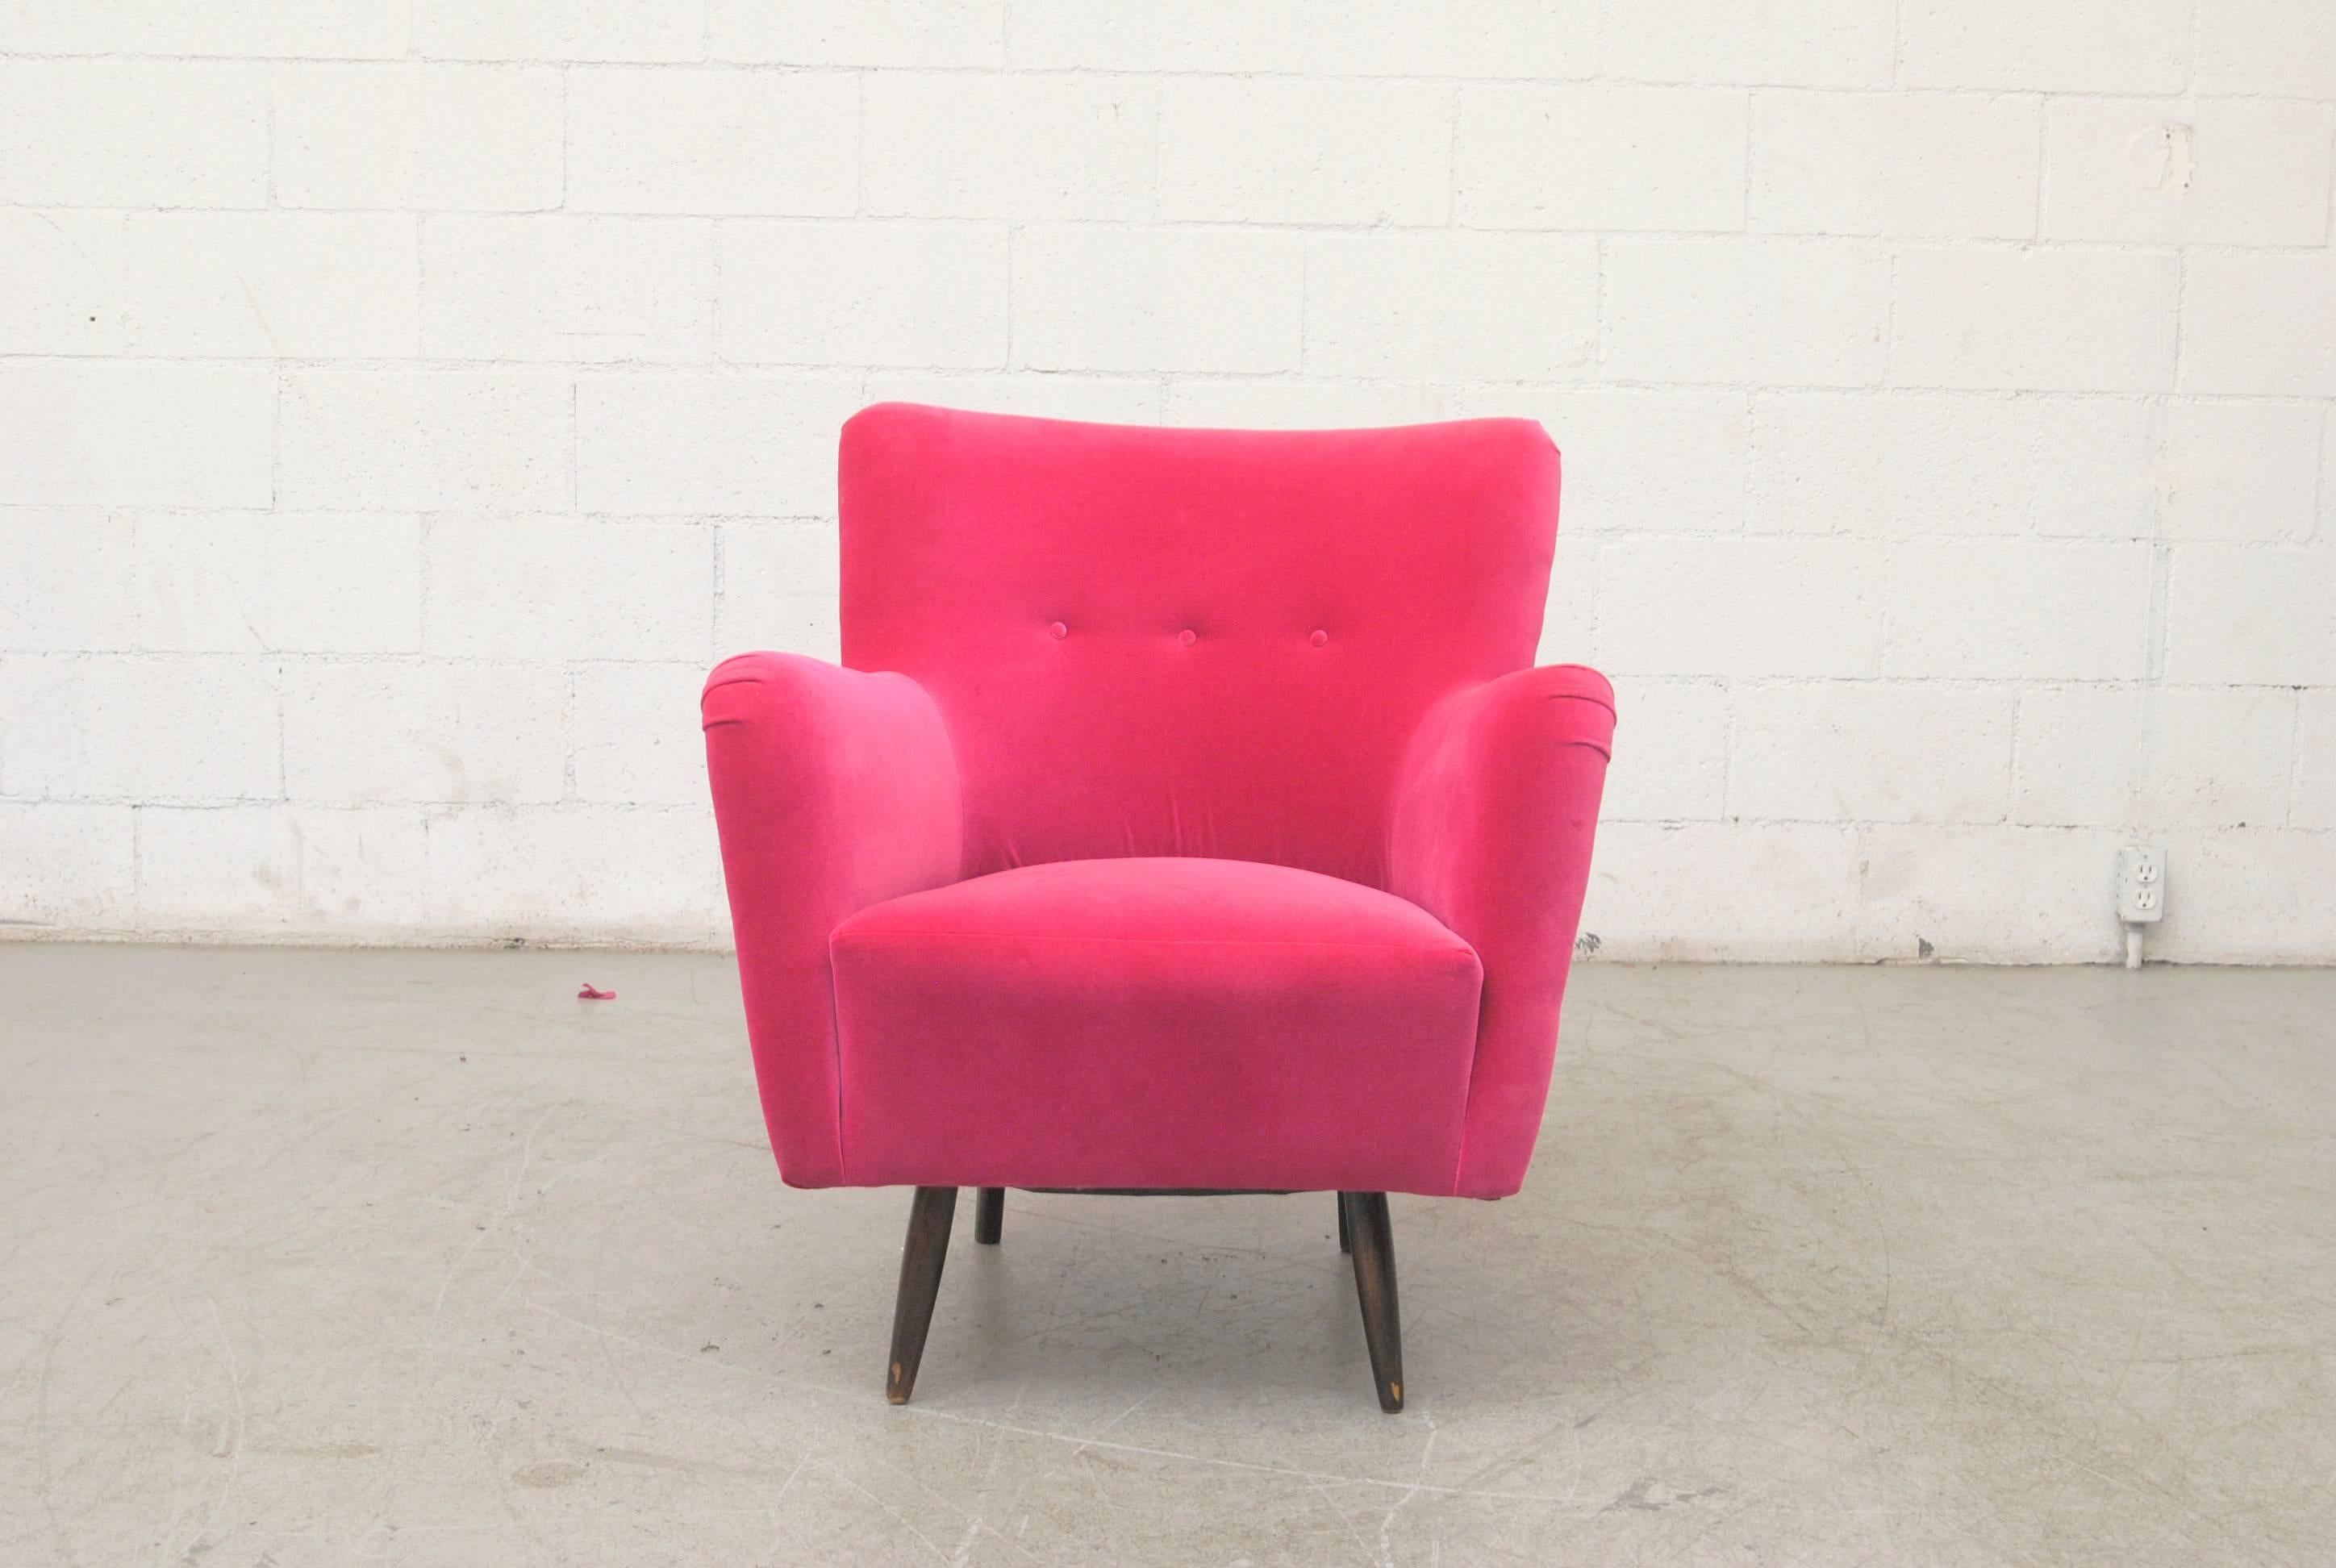 Merveilleux Theo Ruth Lounge Chair, Circa 1956, Newly Upholstered In Hot Pink Velvet  With Original